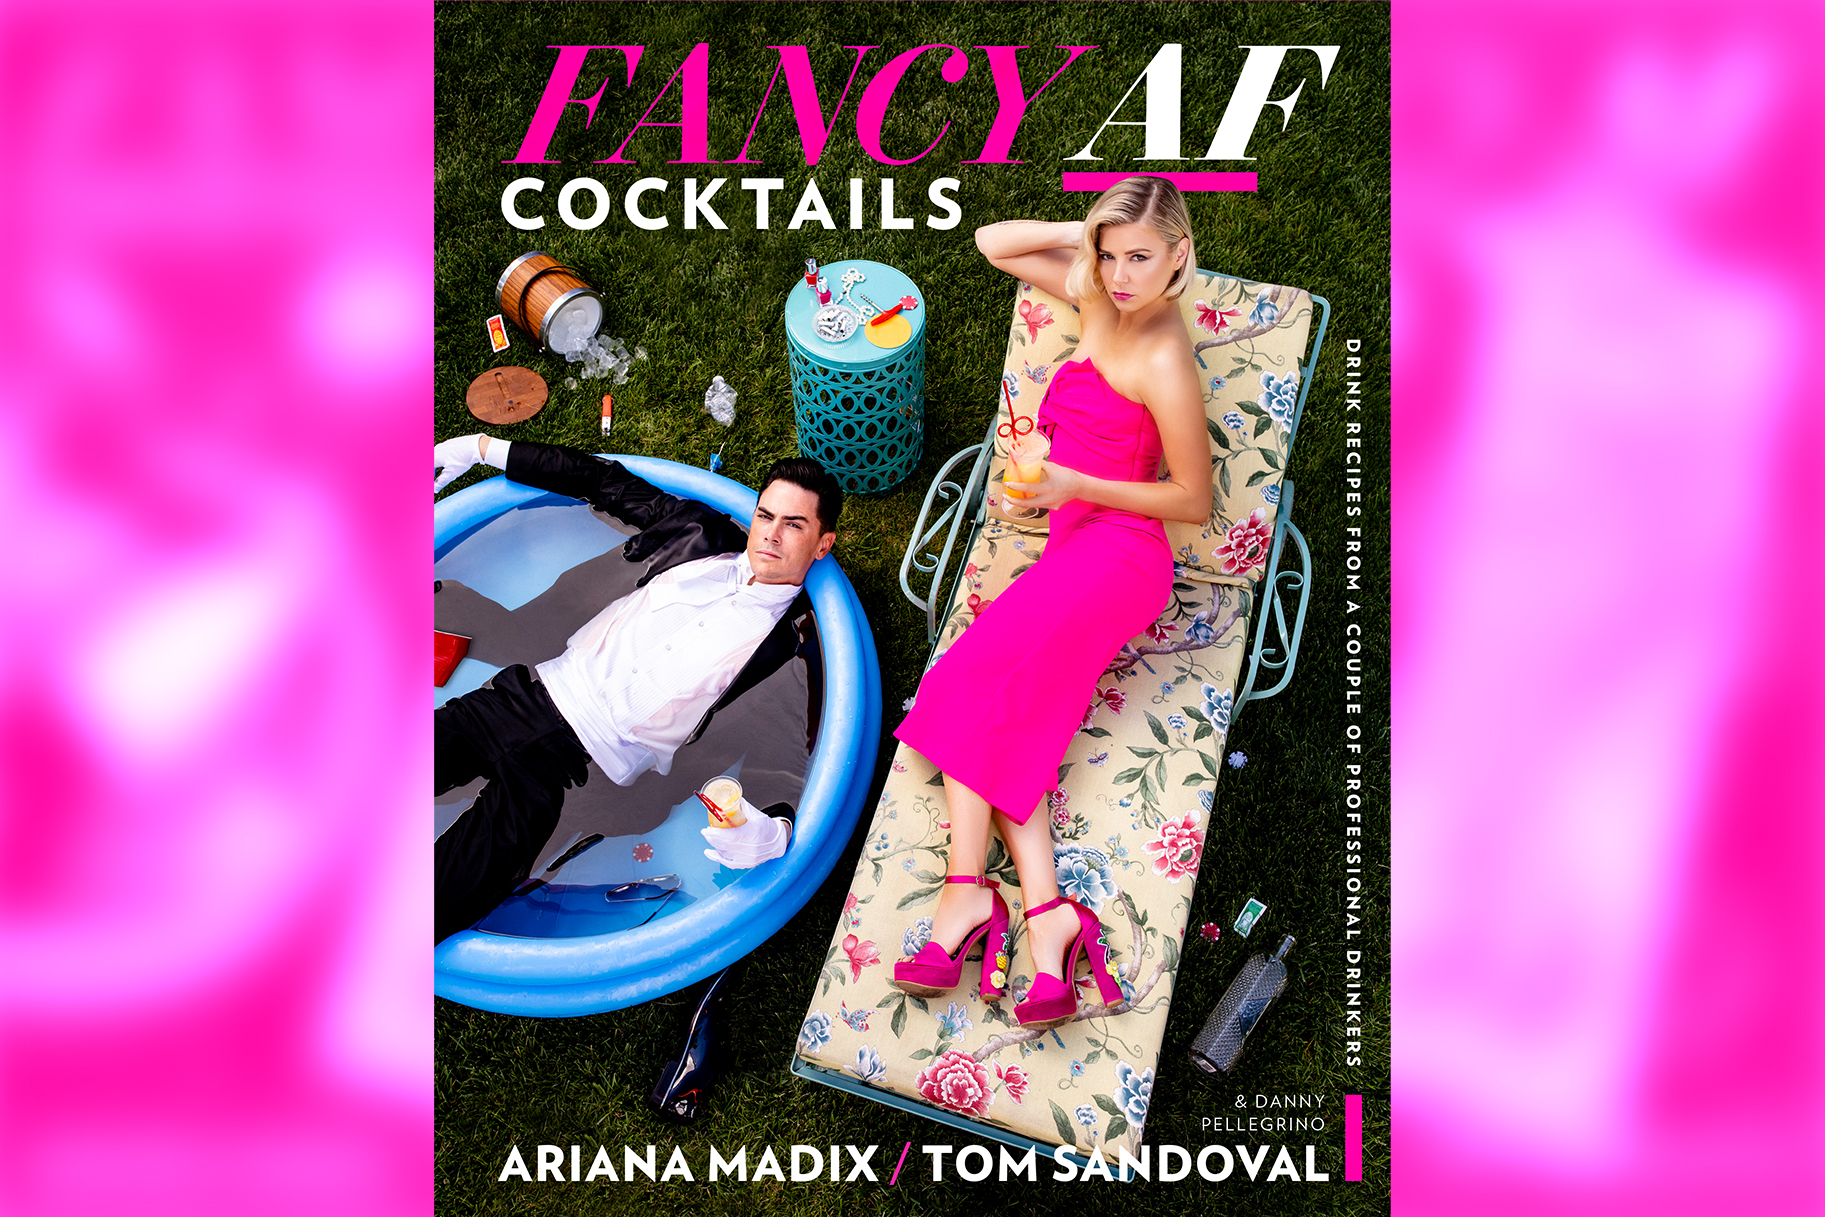 Tom Sandoval Ariana Madix Fancy Af